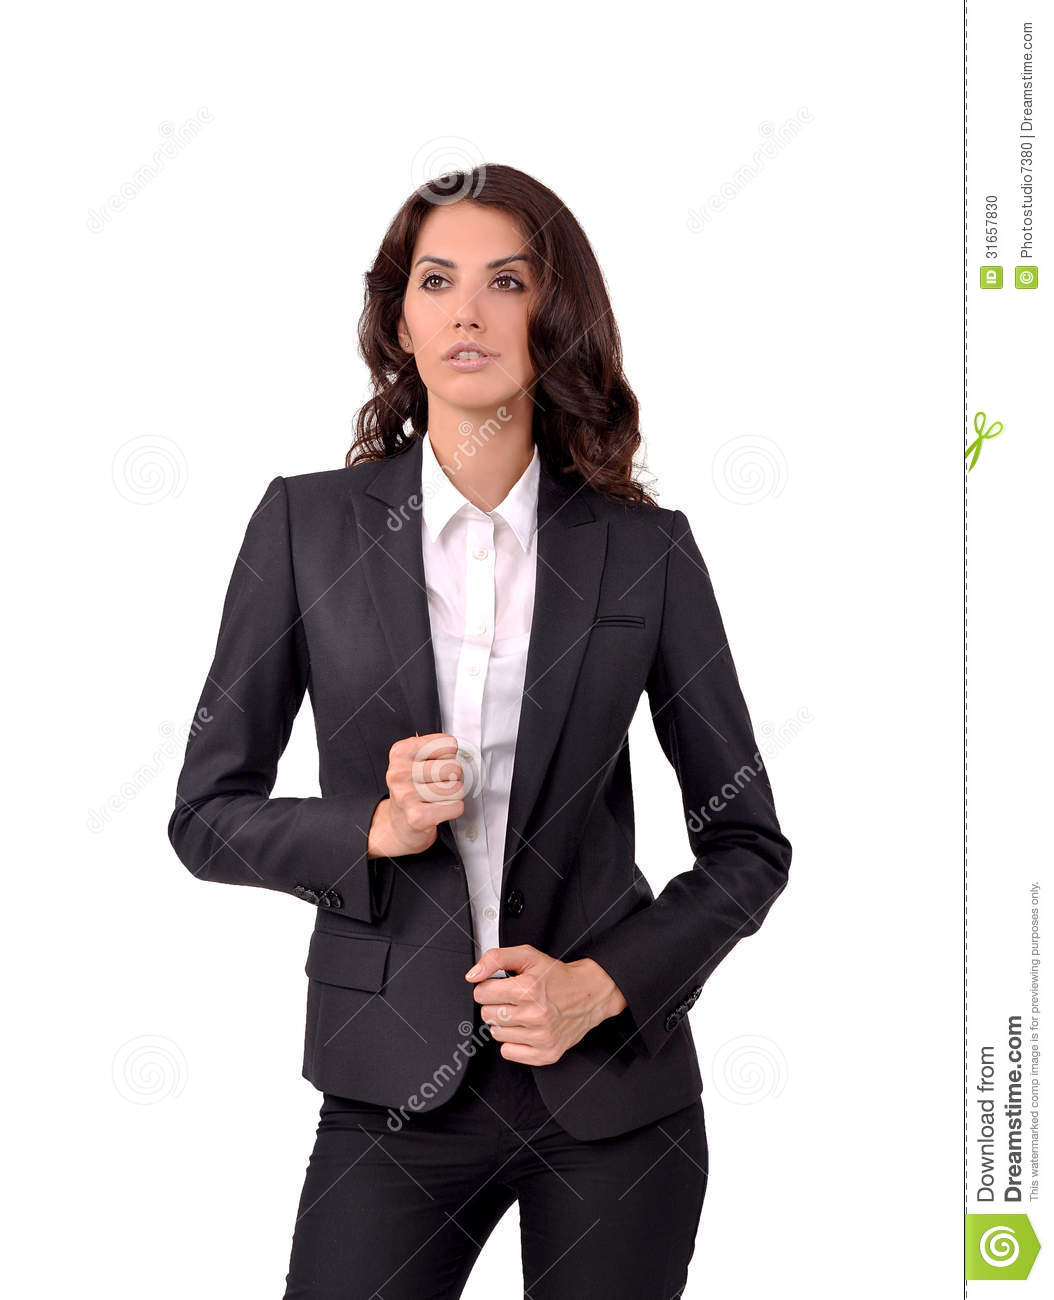 Girl In A Business Suit Stock Photo Image 31657830